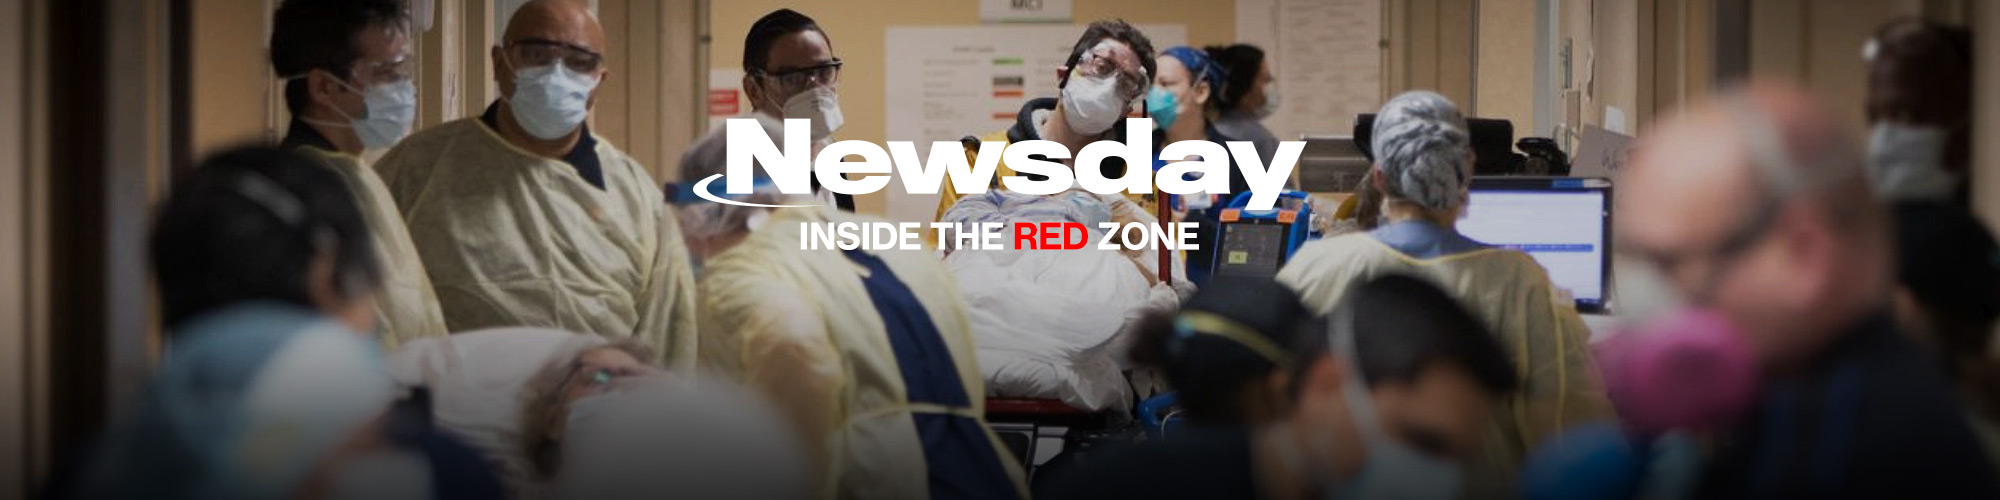 Newsday Exclusive: Inside the Red Zone Battling the Coronavirus Inside Mount Sinai South Nassau ... READ MORE